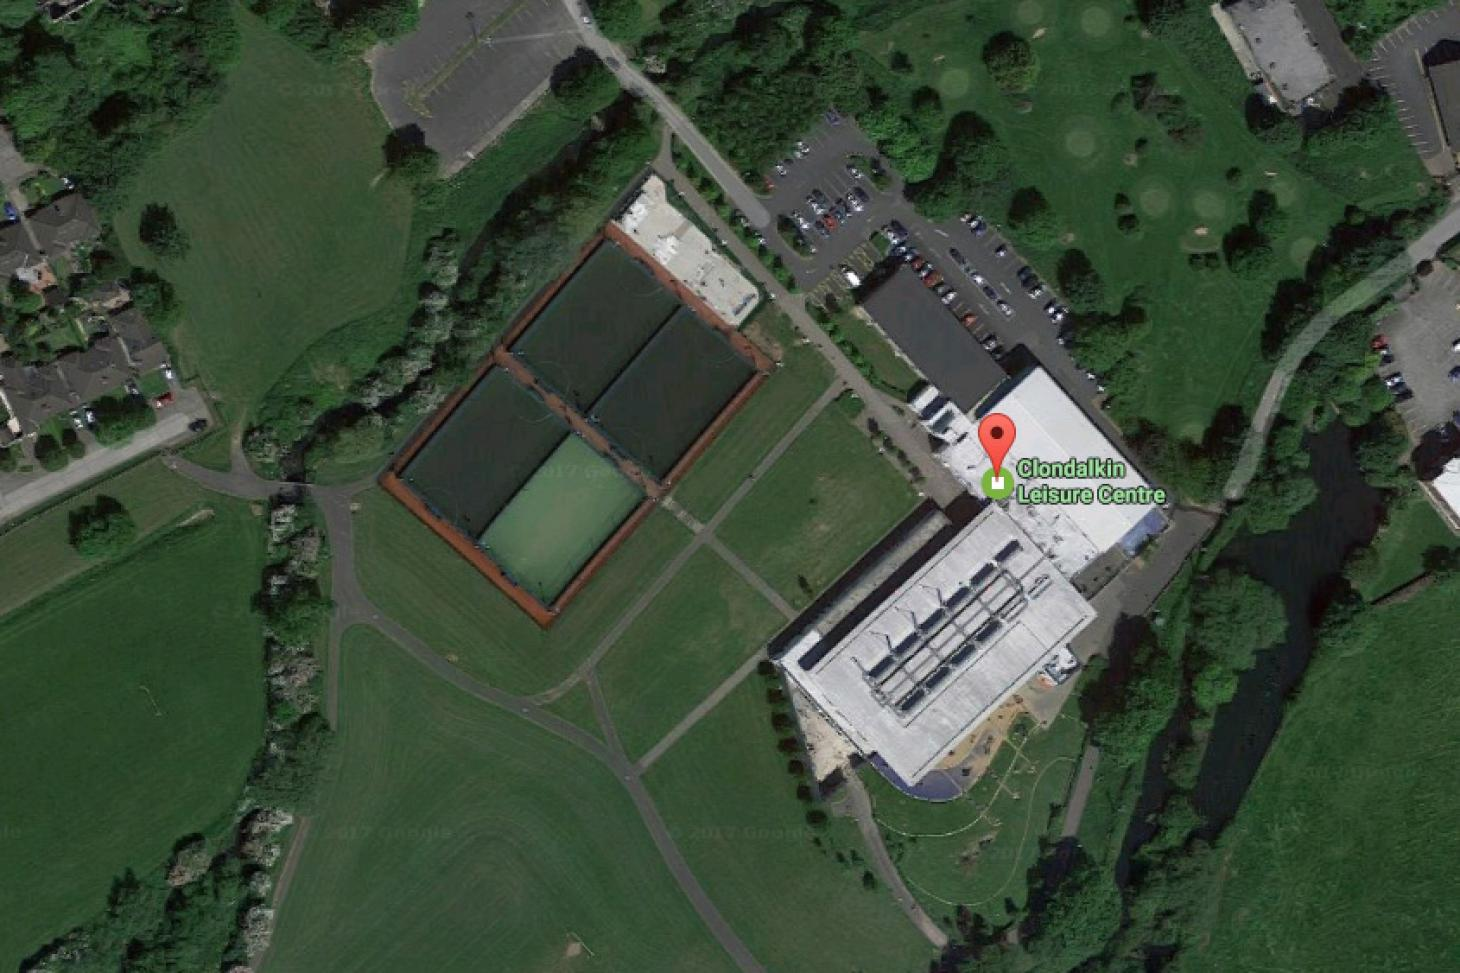 Clondalkin Leisure Centre 5 a side | Astroturf football pitch